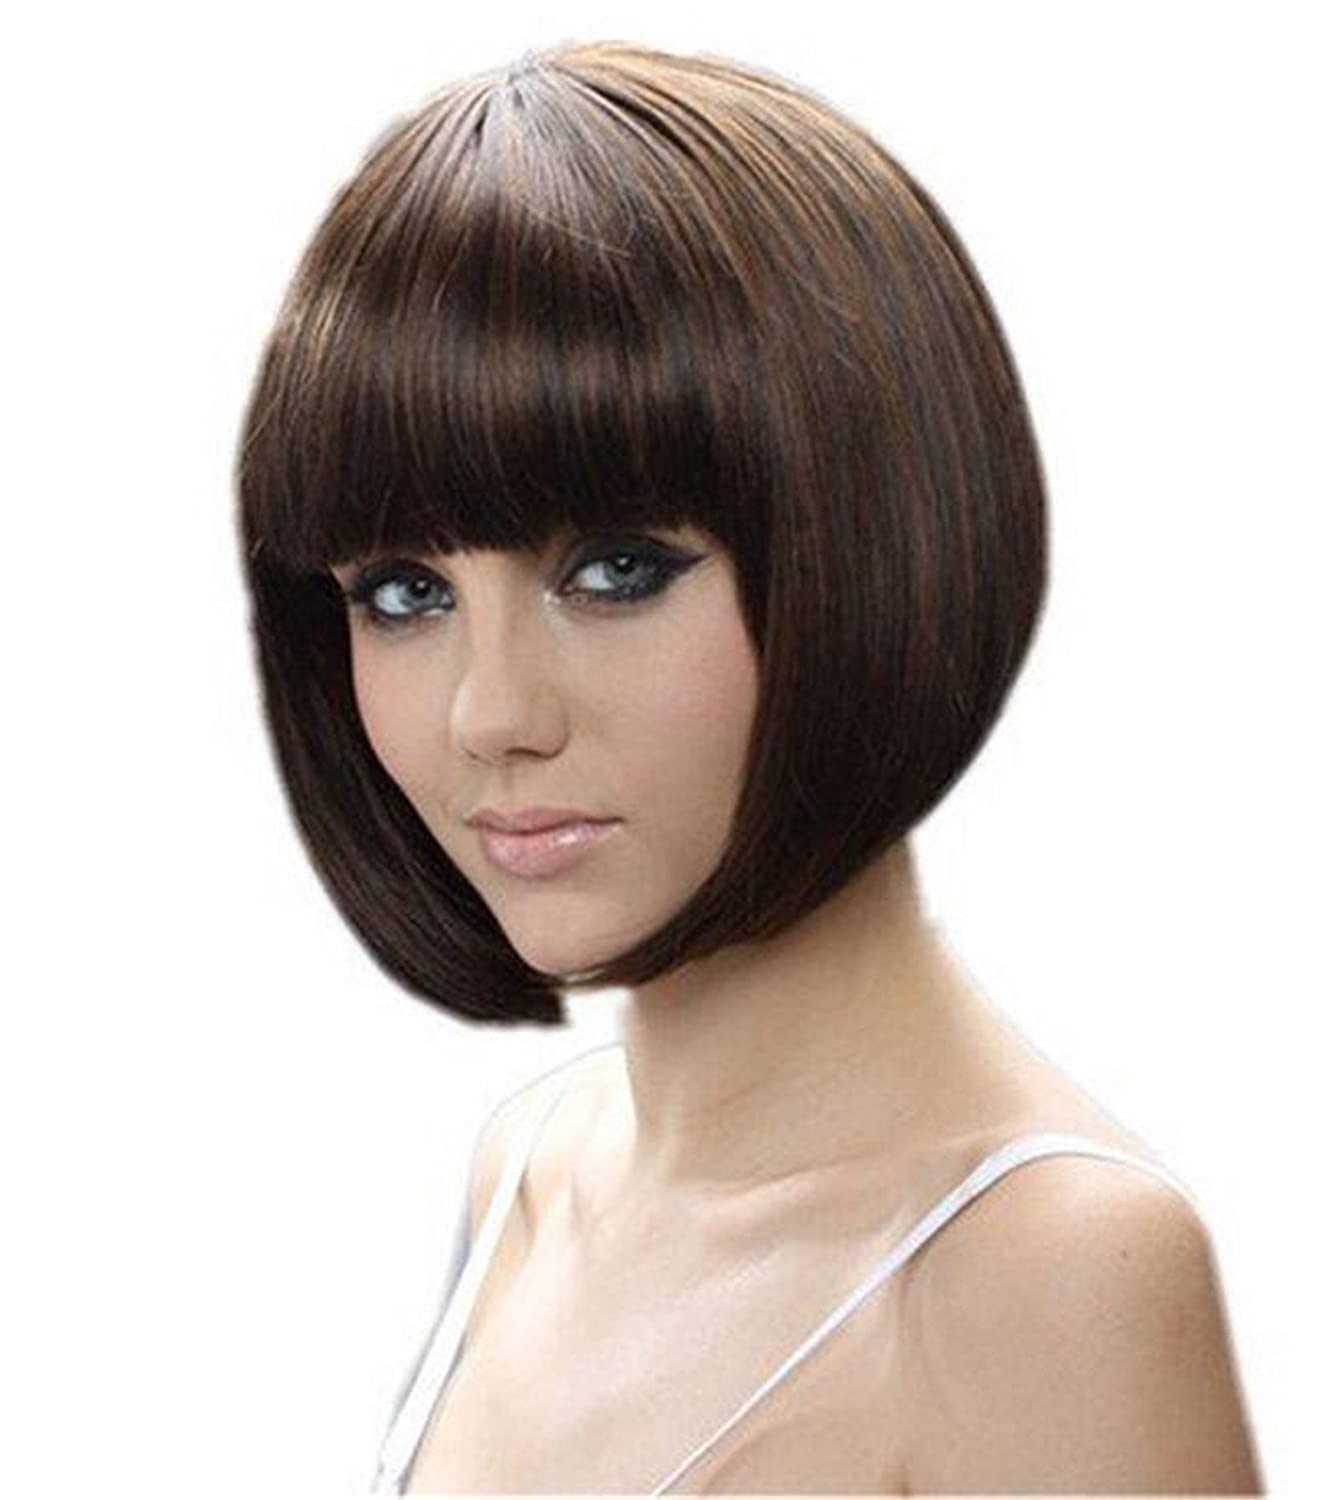 Coo2day 8 30cm Short Hair Wig Natural As Real Hair Cosplay Wigs Neat Bangs Bob Wigs(Brown) Cool2day JF011492-AA